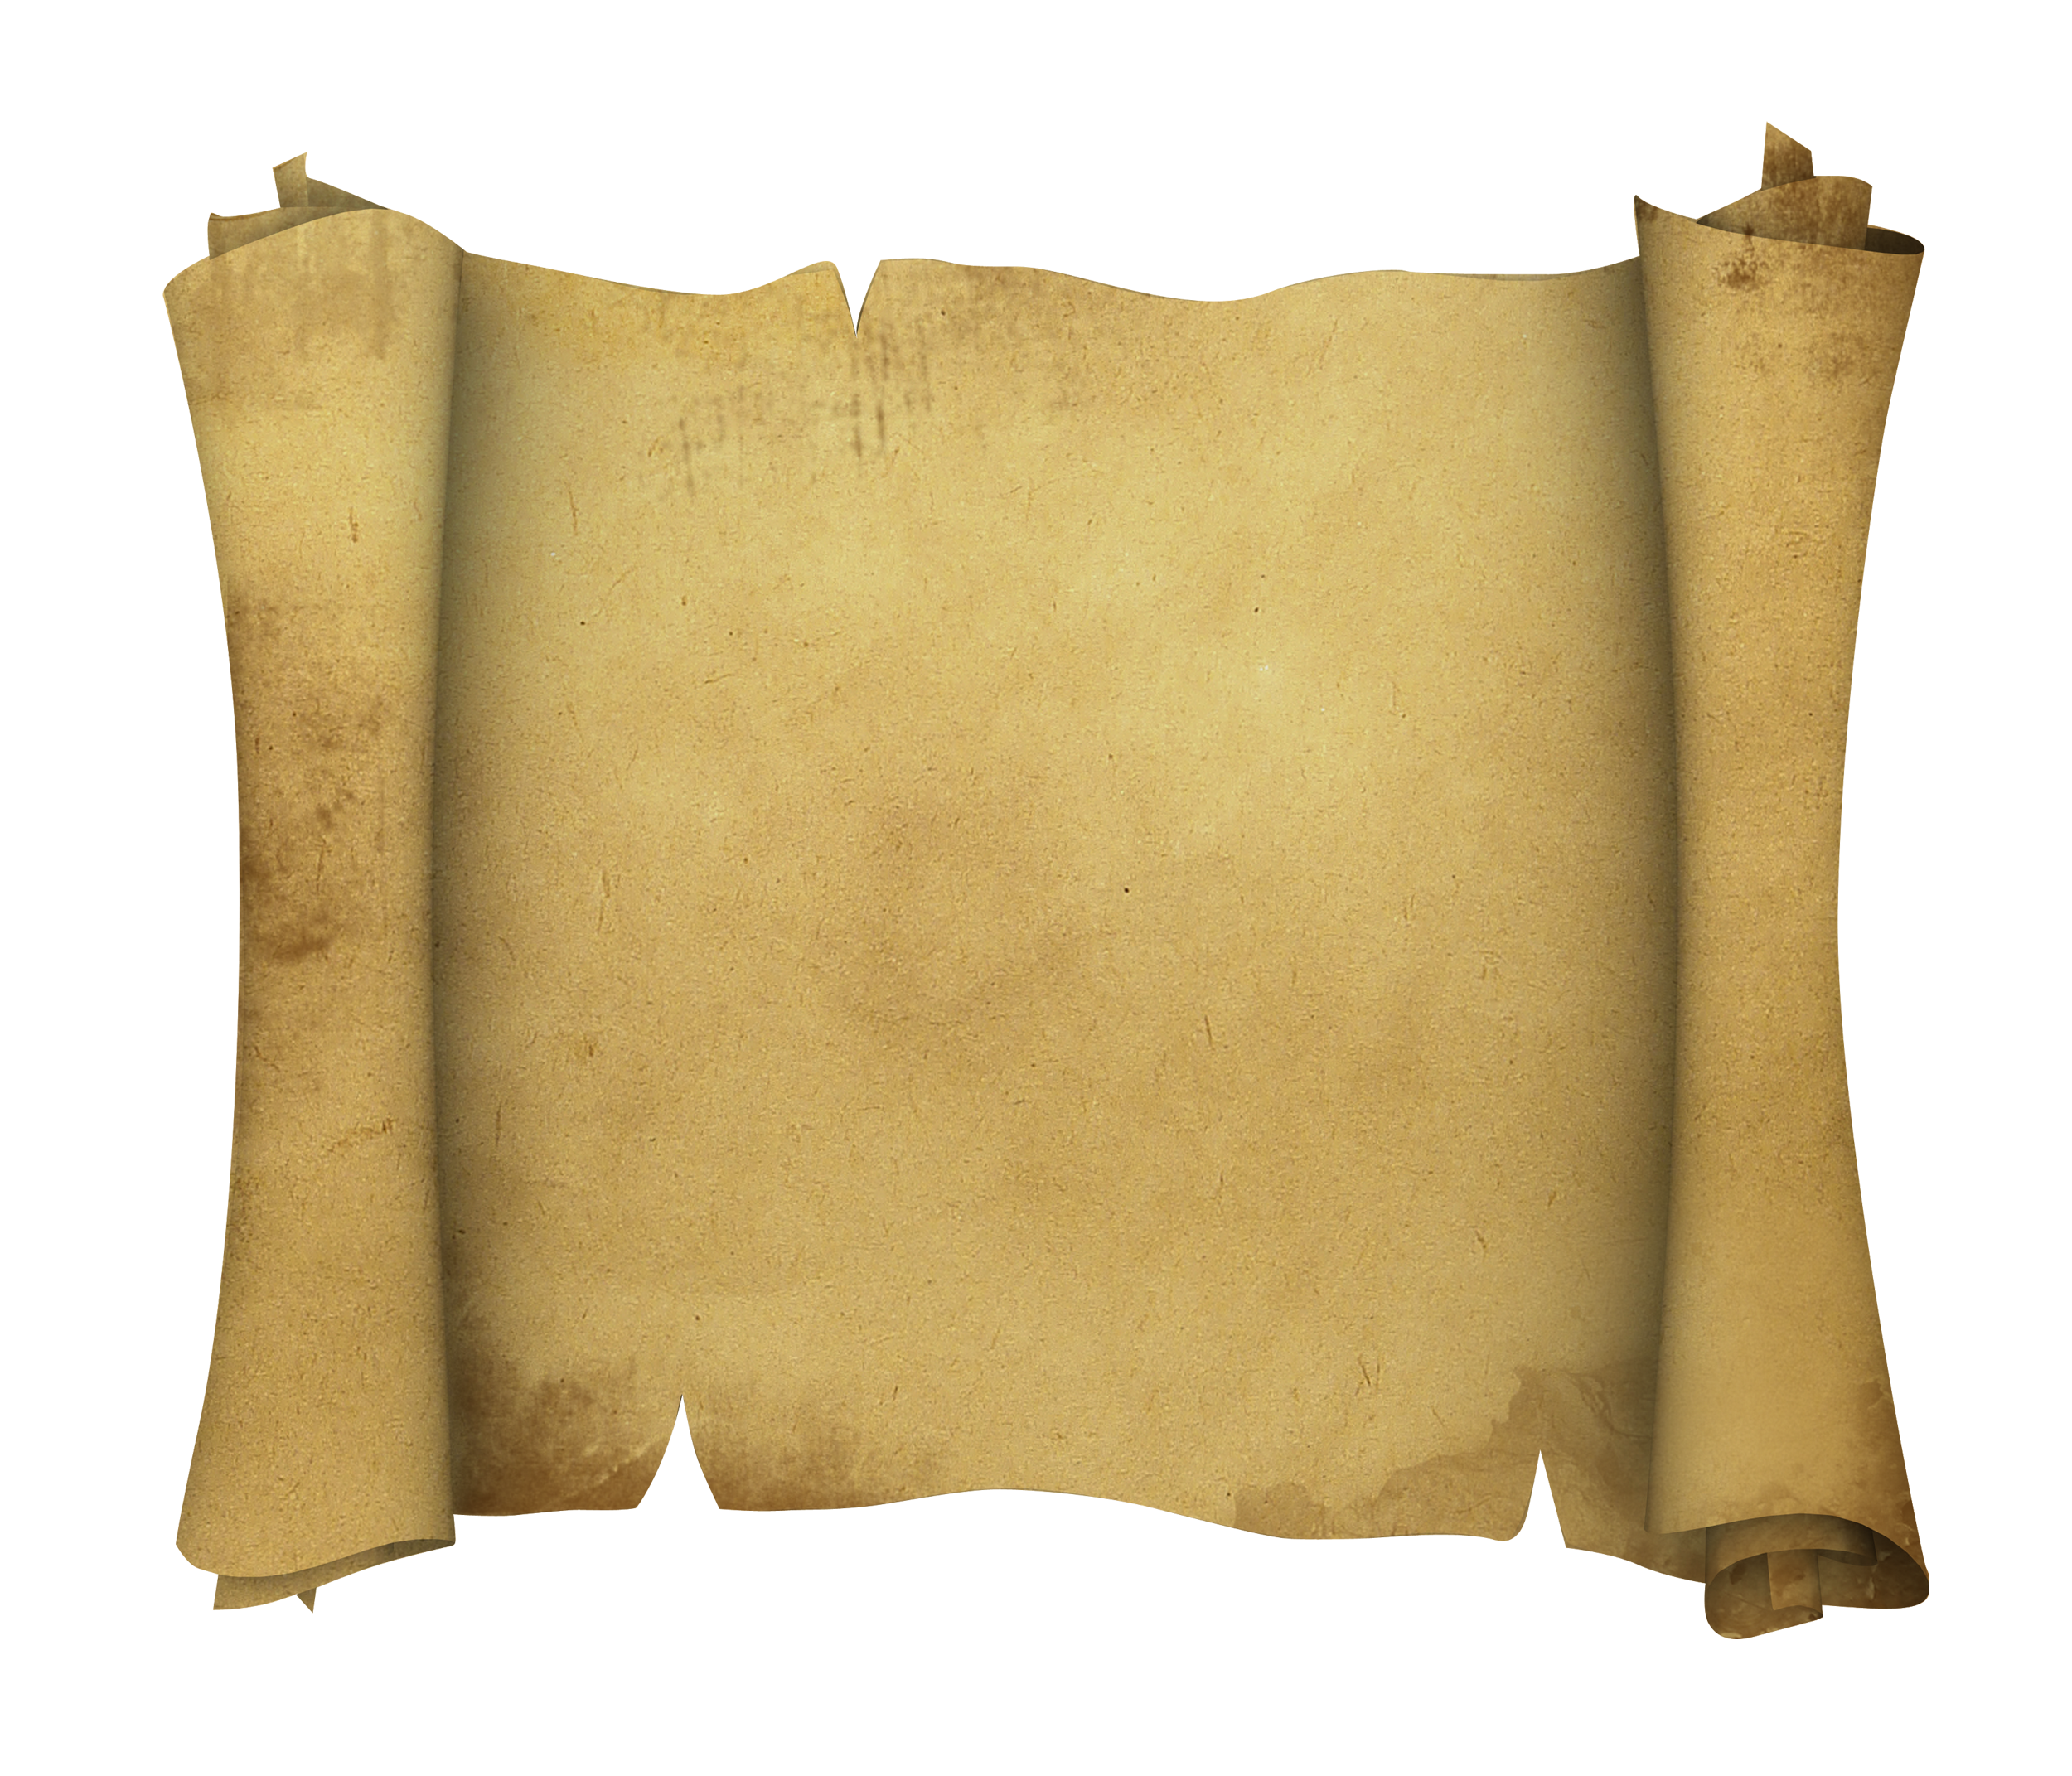 Pirate scroll png. Transparent pictures free icons